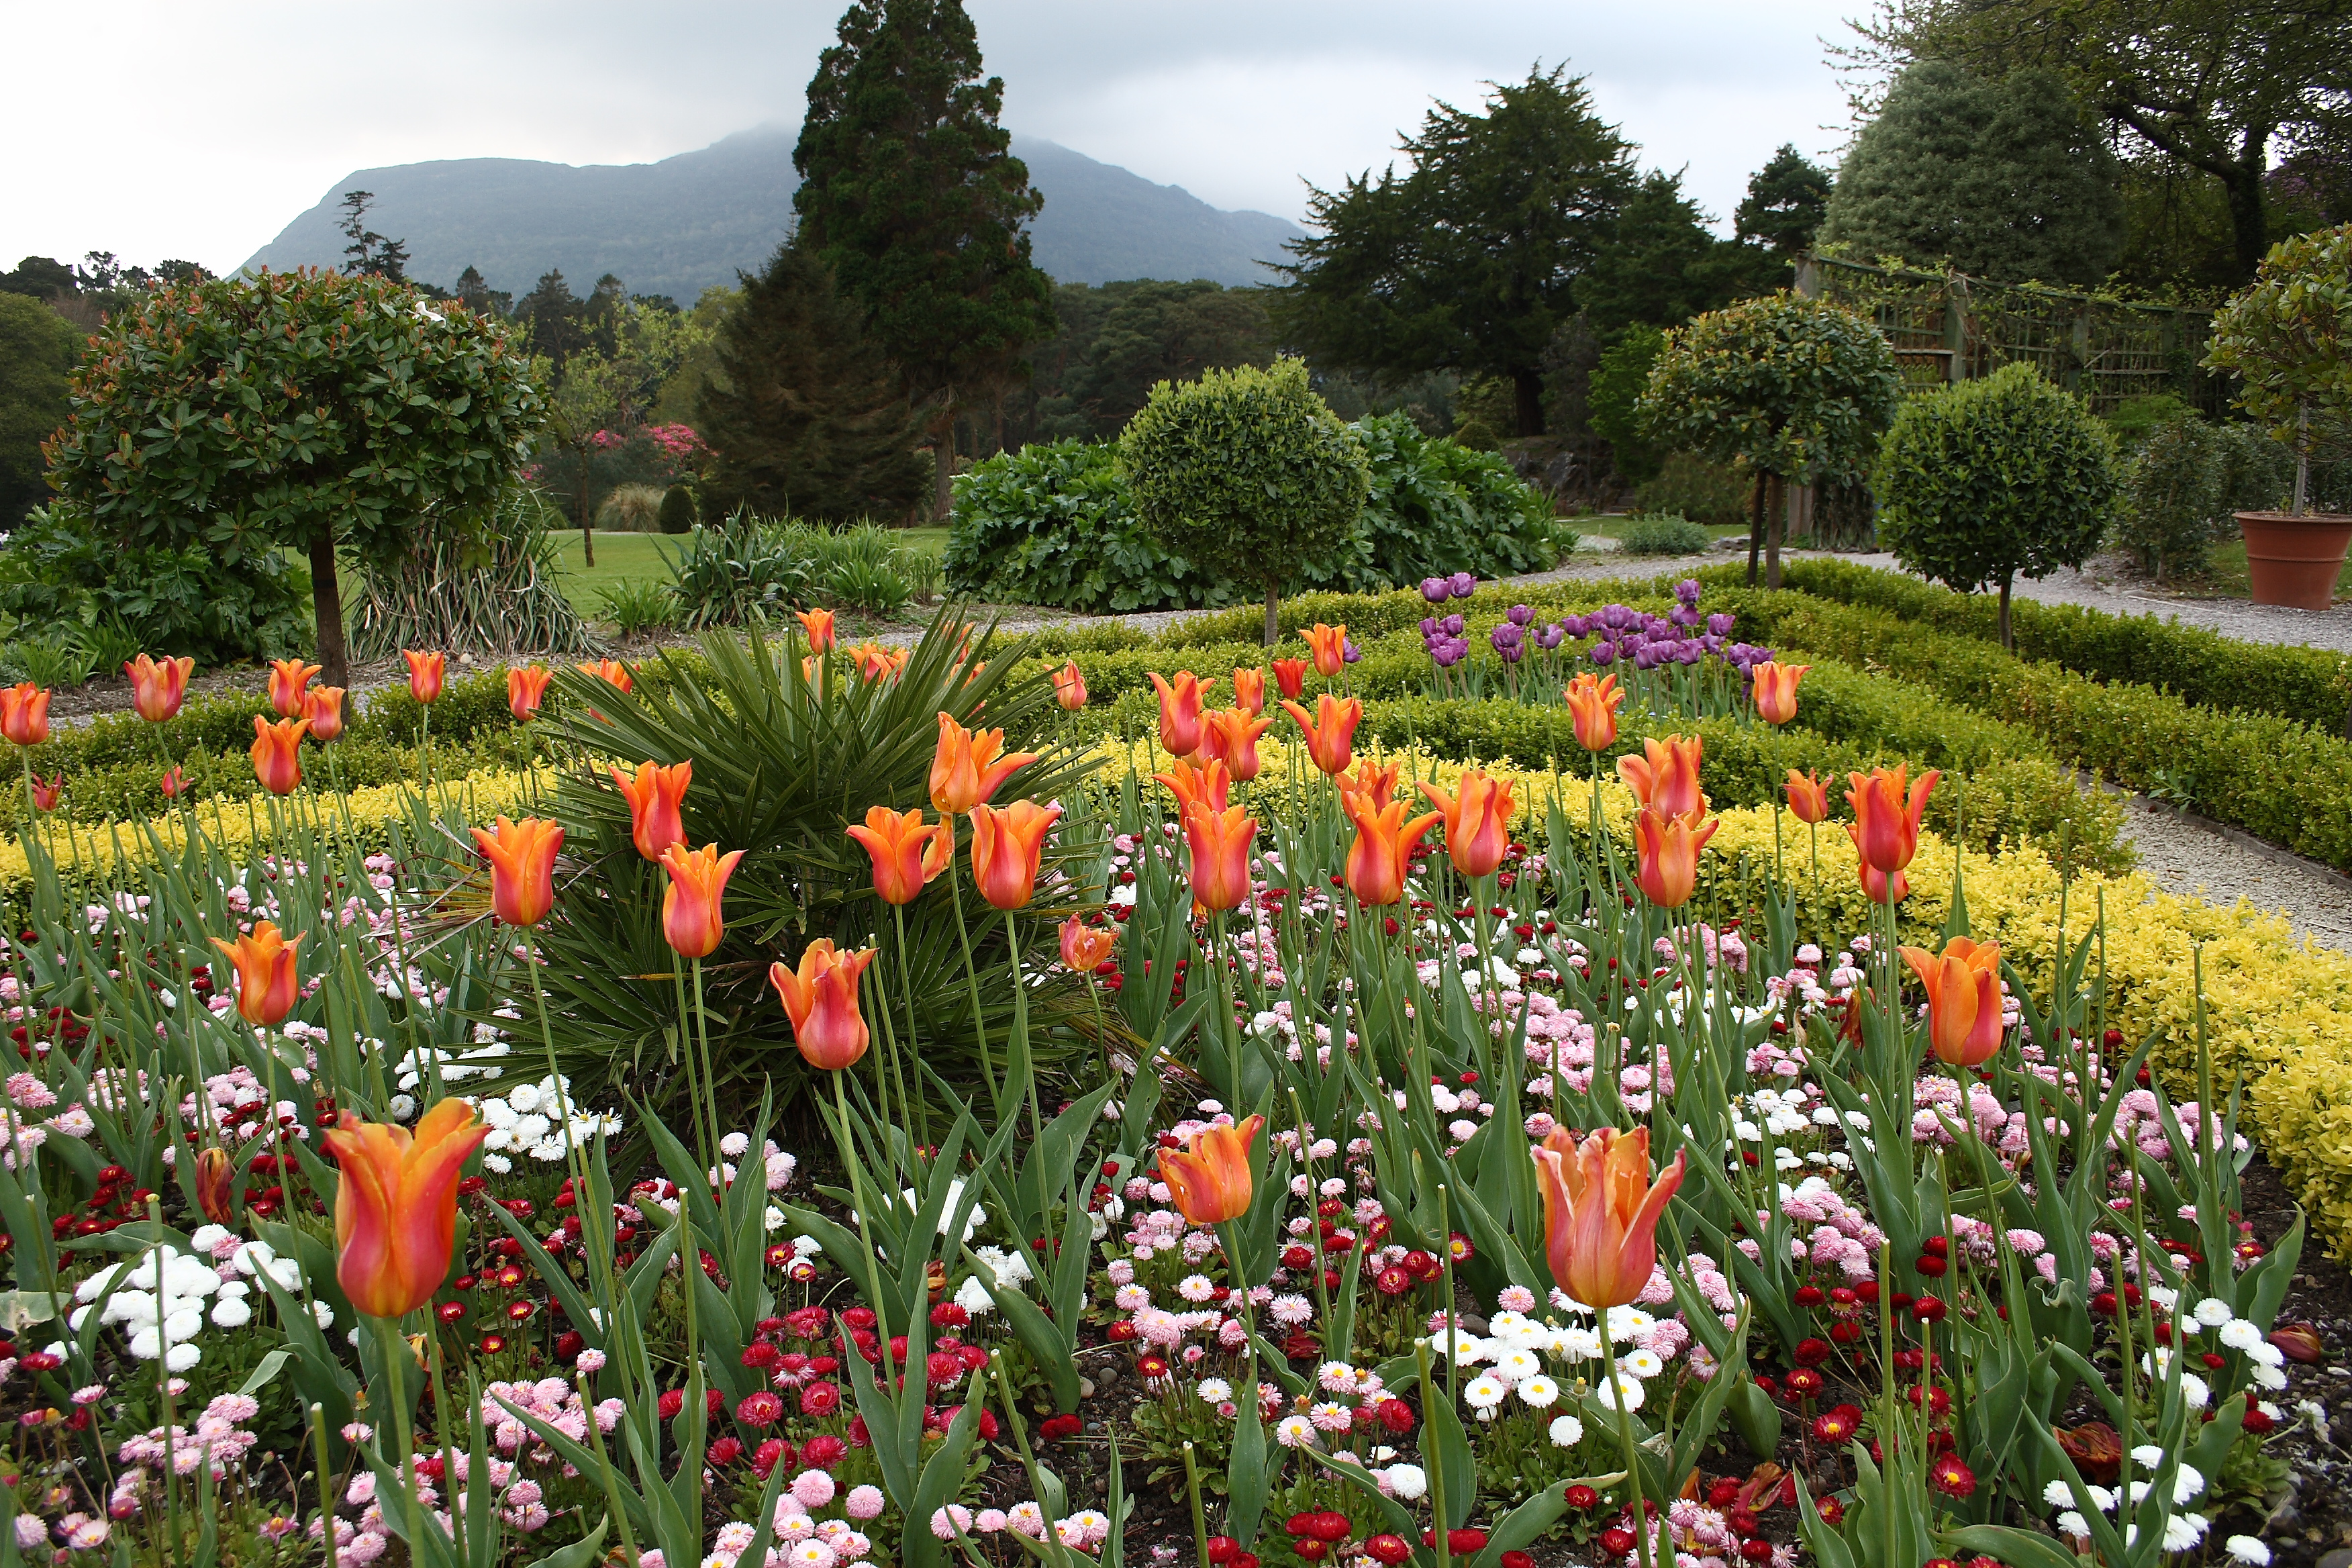 File:Flower Garden at Muckross House.jpg